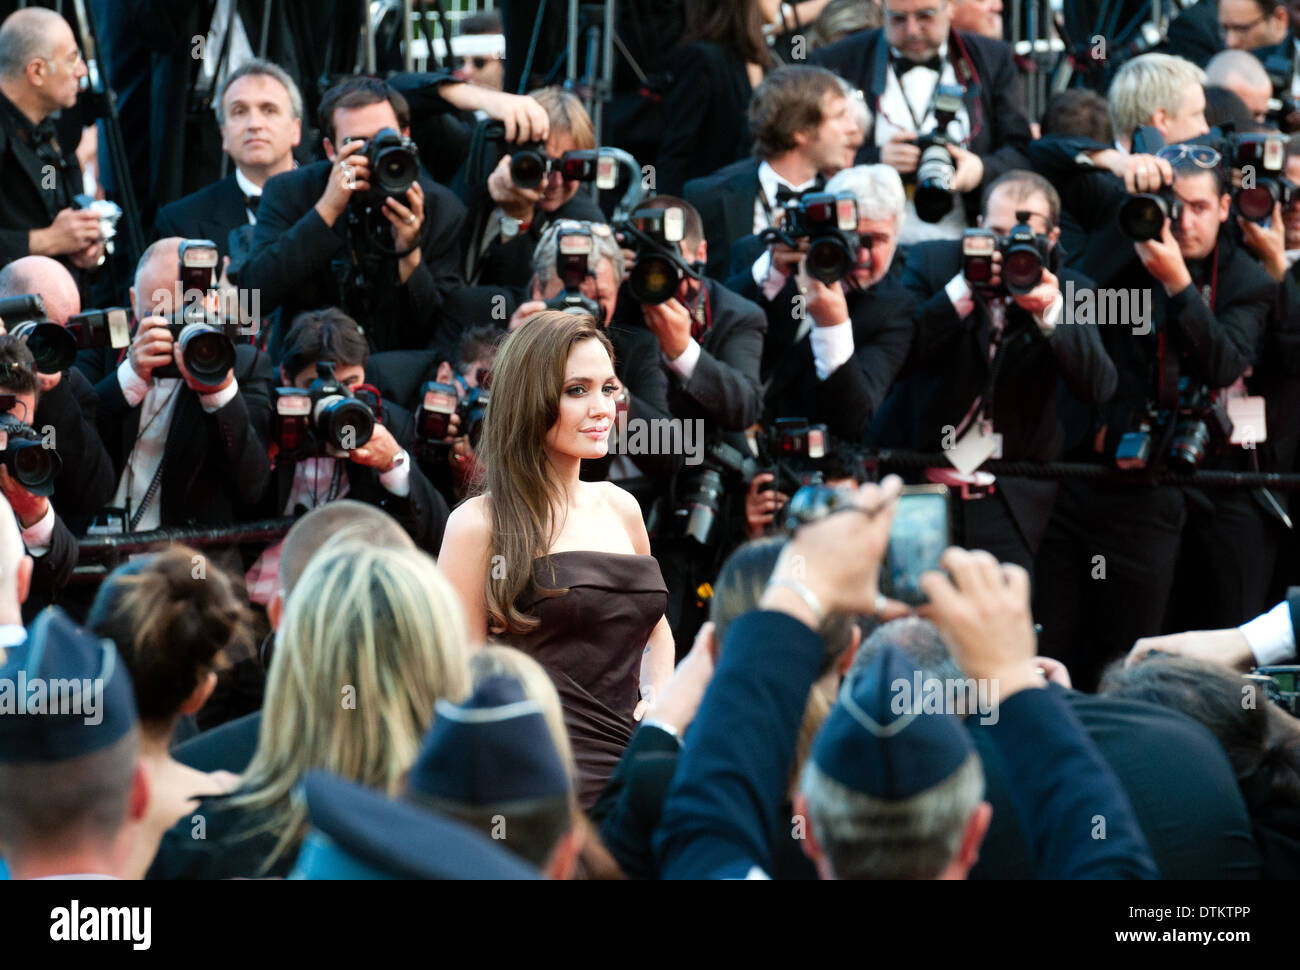 Europe, France, Alpes-Maritimes, Cannes film festival. The actress Angelina Jolie. - Stock Image